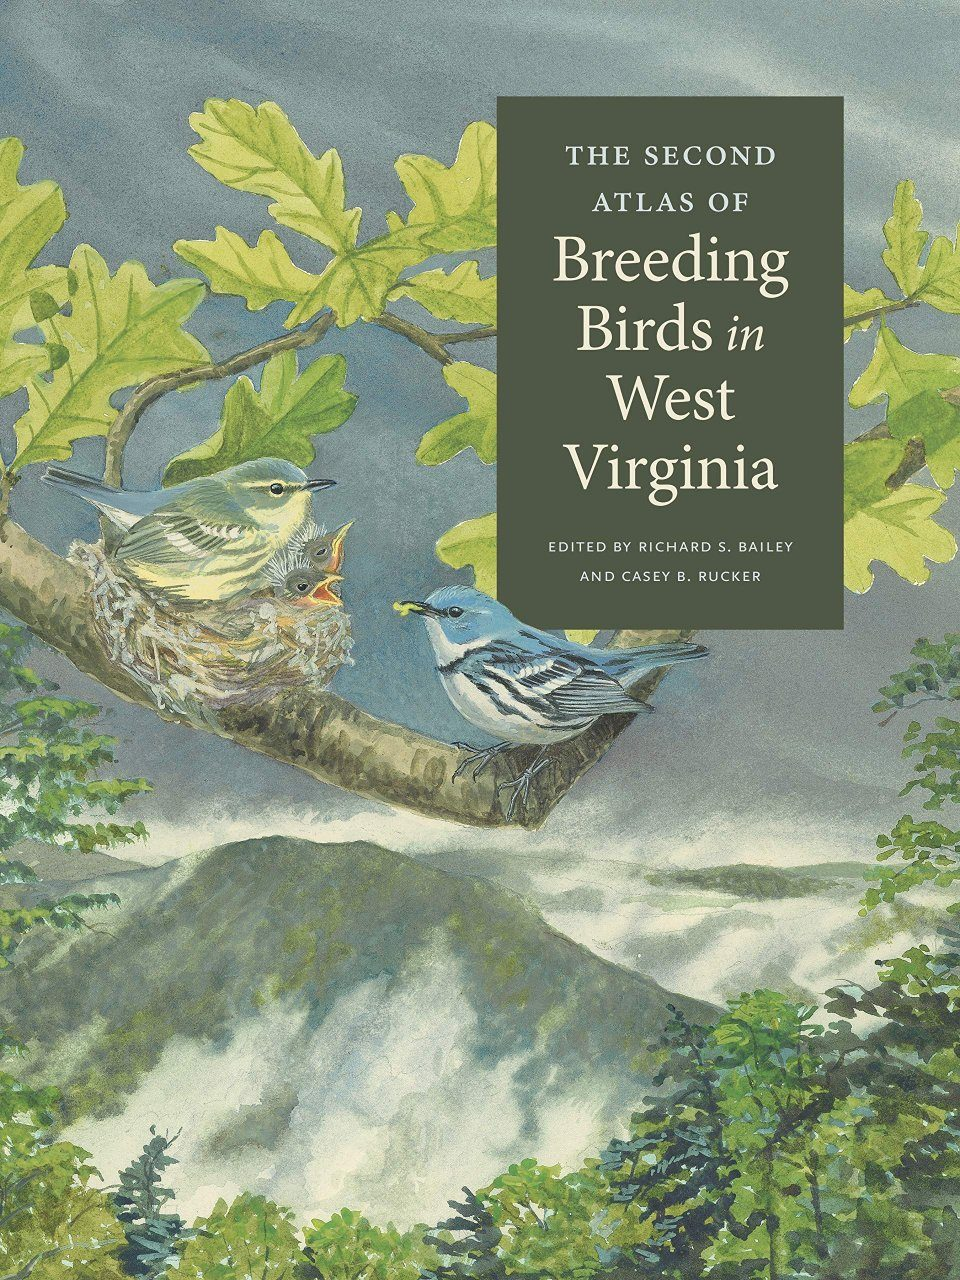 The Second Atlas of Breeding Birds in West Virginia